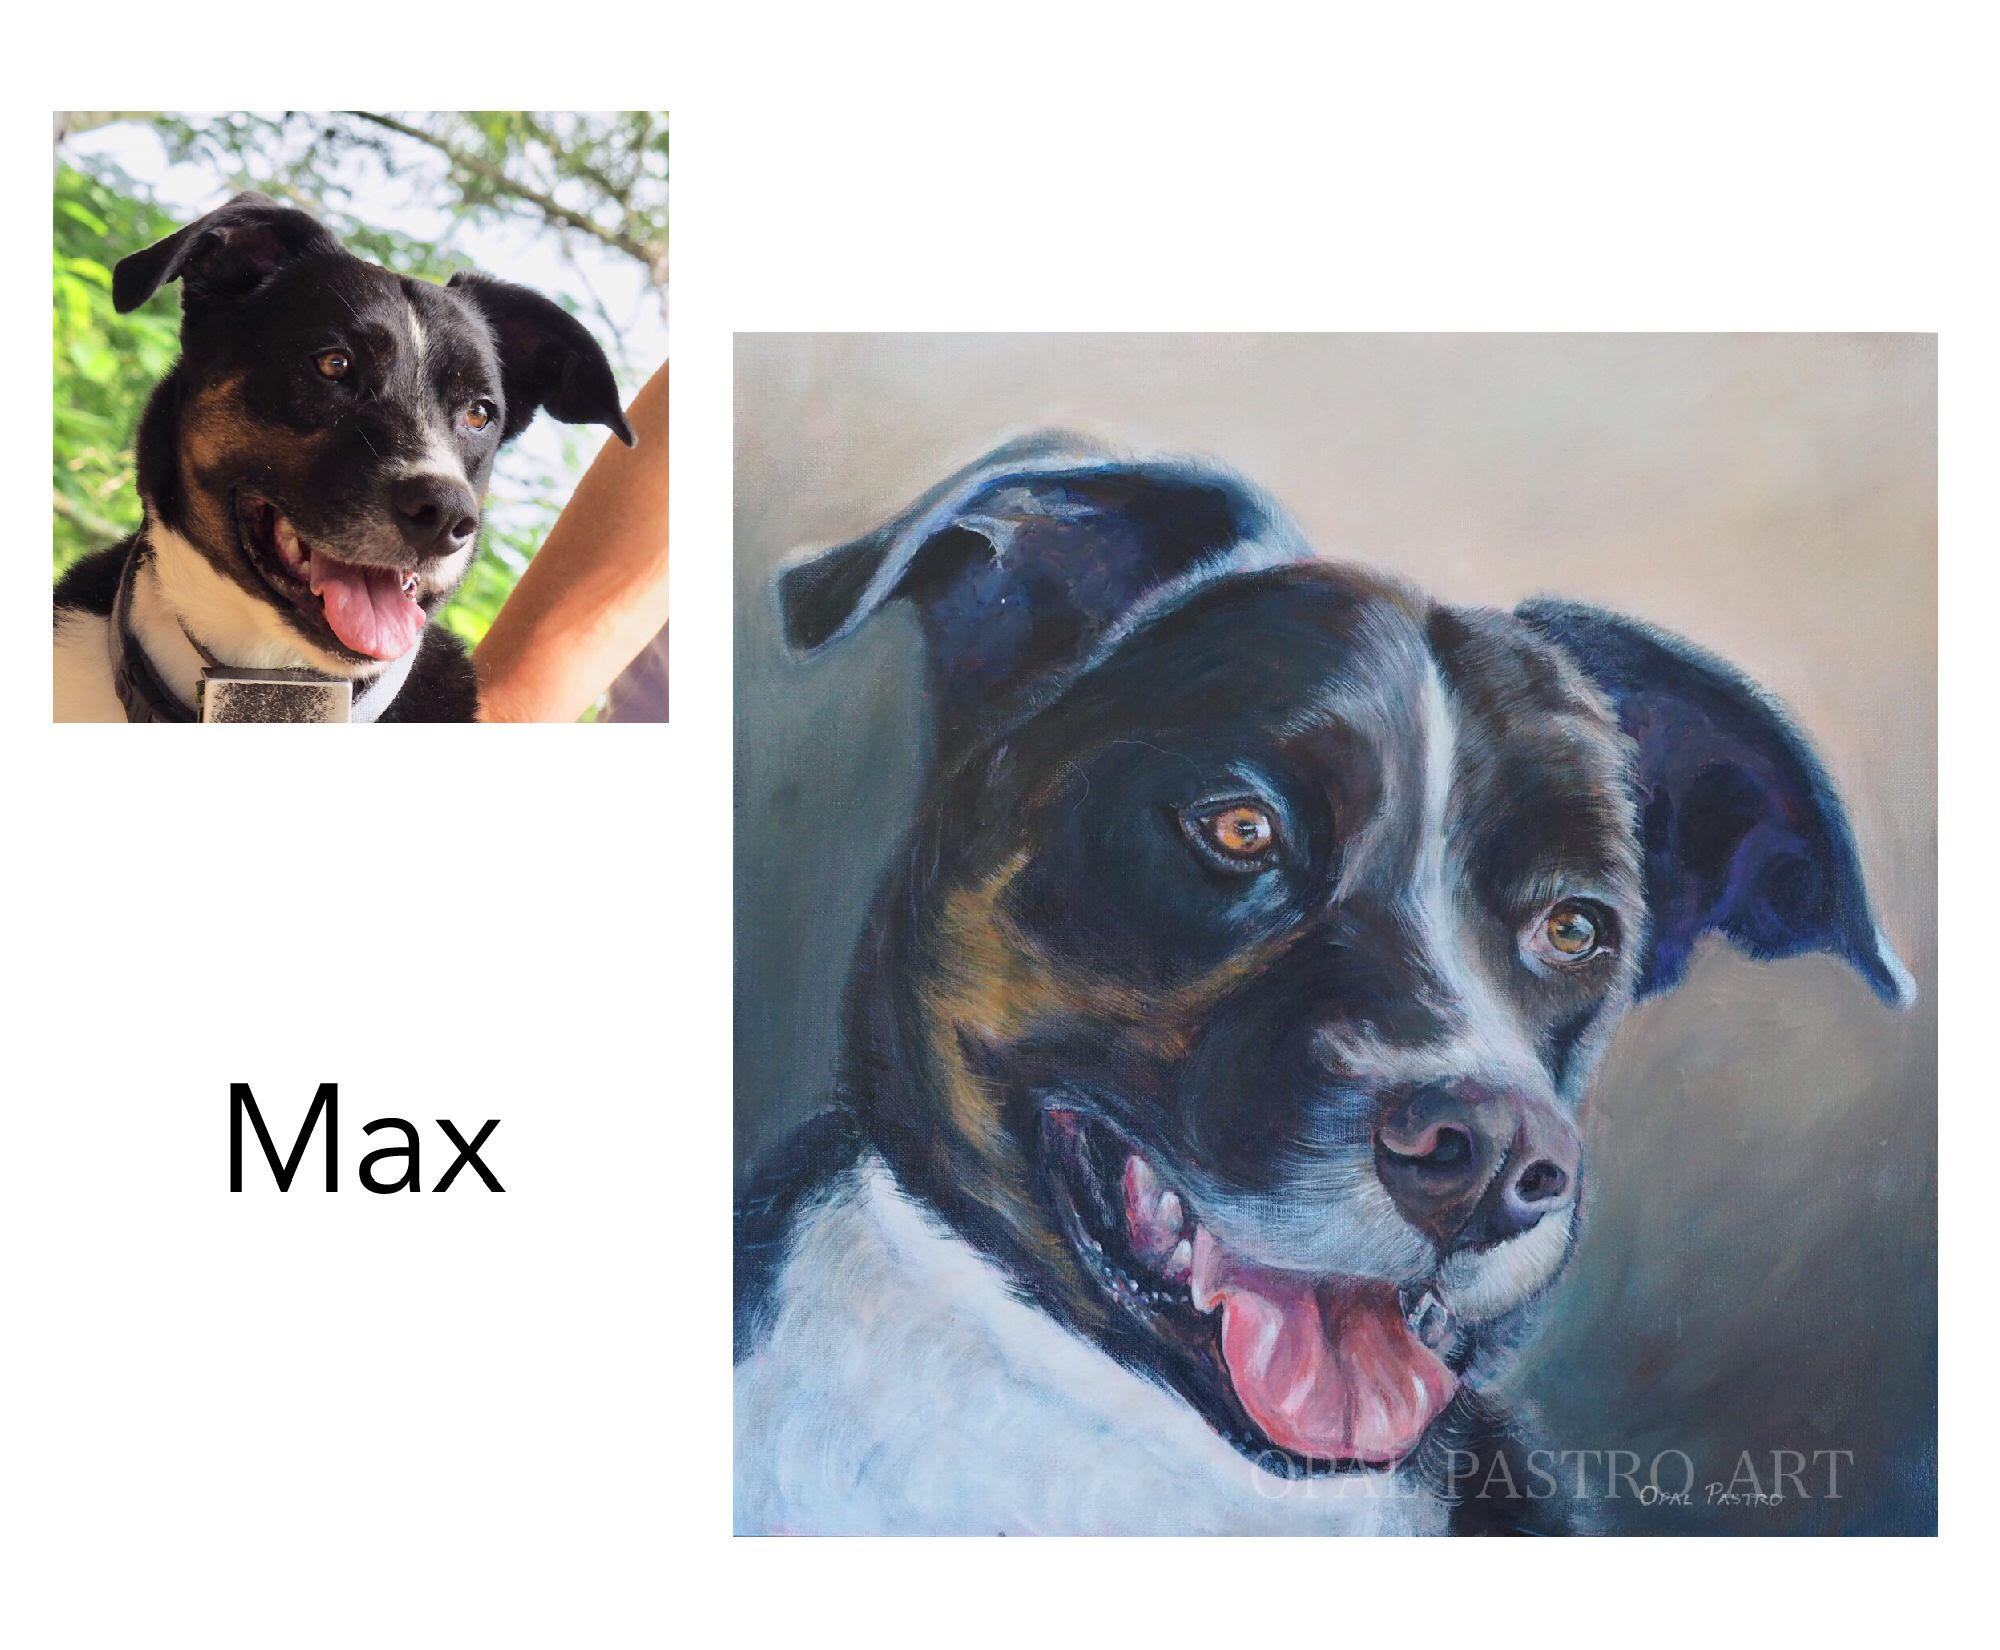 "Labrador mix - Acrylic on canvas 18"" x 18""  (45.72cm x 45.72cm)Private commissionBellingen, NSW——————————Max is a sweet Lab cross with heaps of energy and lots of love. I met him for his photo shoot and enjoyed lots of pats and cuddles. Doesn't he have the most beautiful smile?"